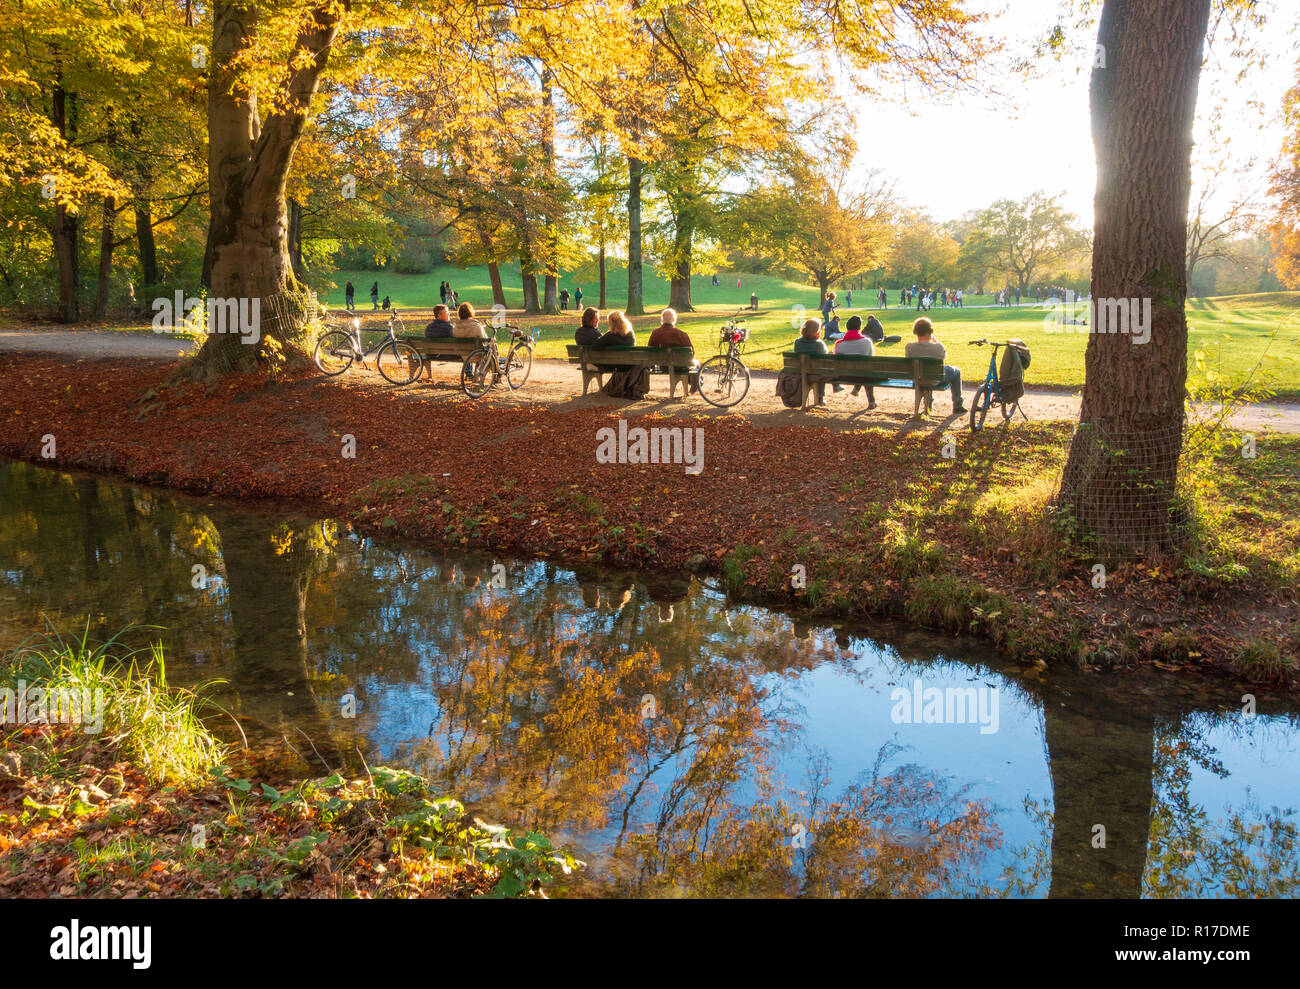 Englischer Garten Park in autumn, Munich, Germany - Stock Image